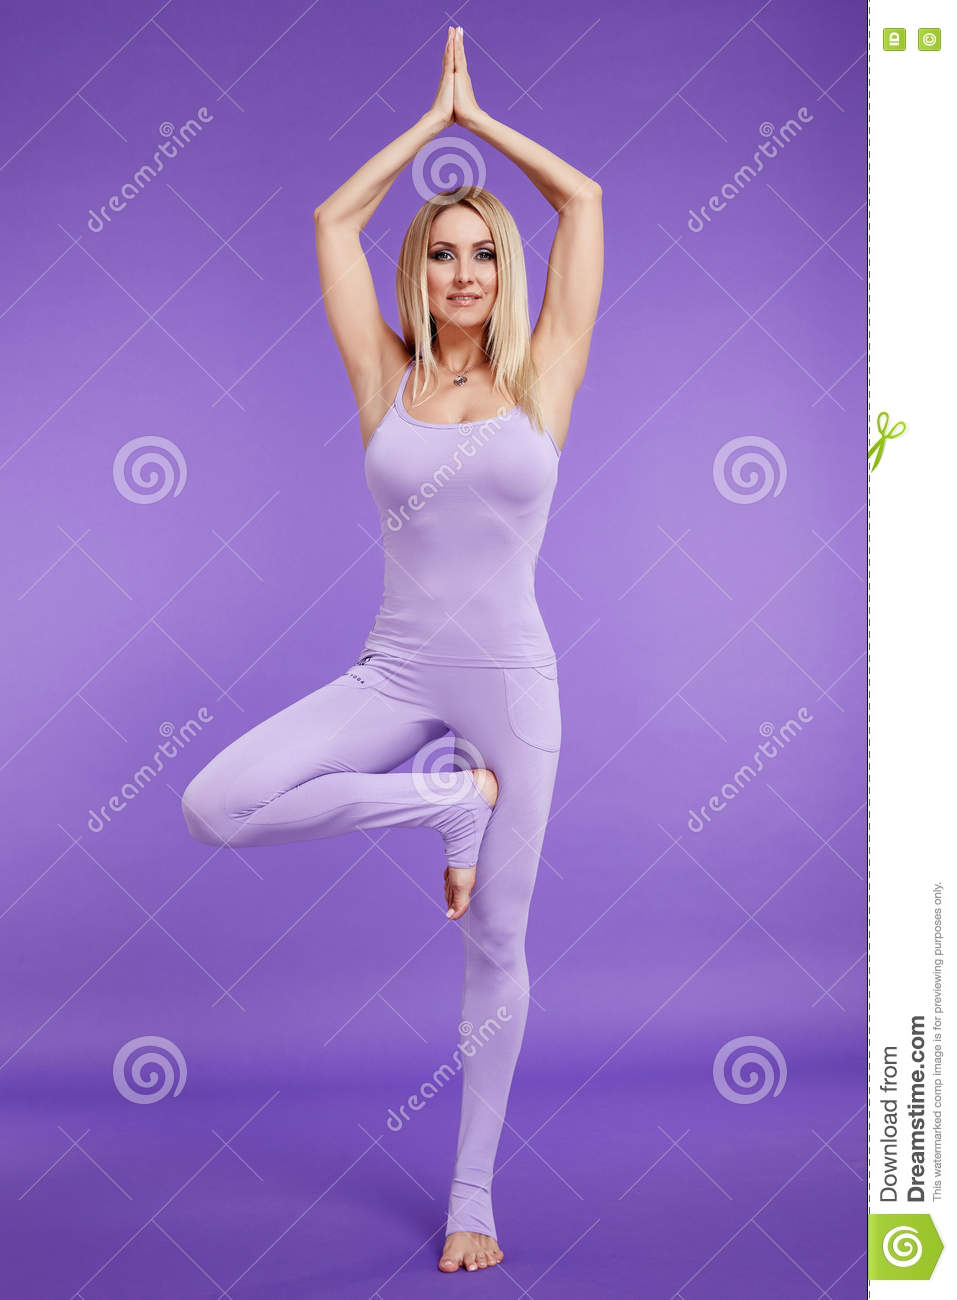 Beautiful young blond woman perfect athlete slim figure in gymnastics exercise stretching, trainer, fitness health wear sport